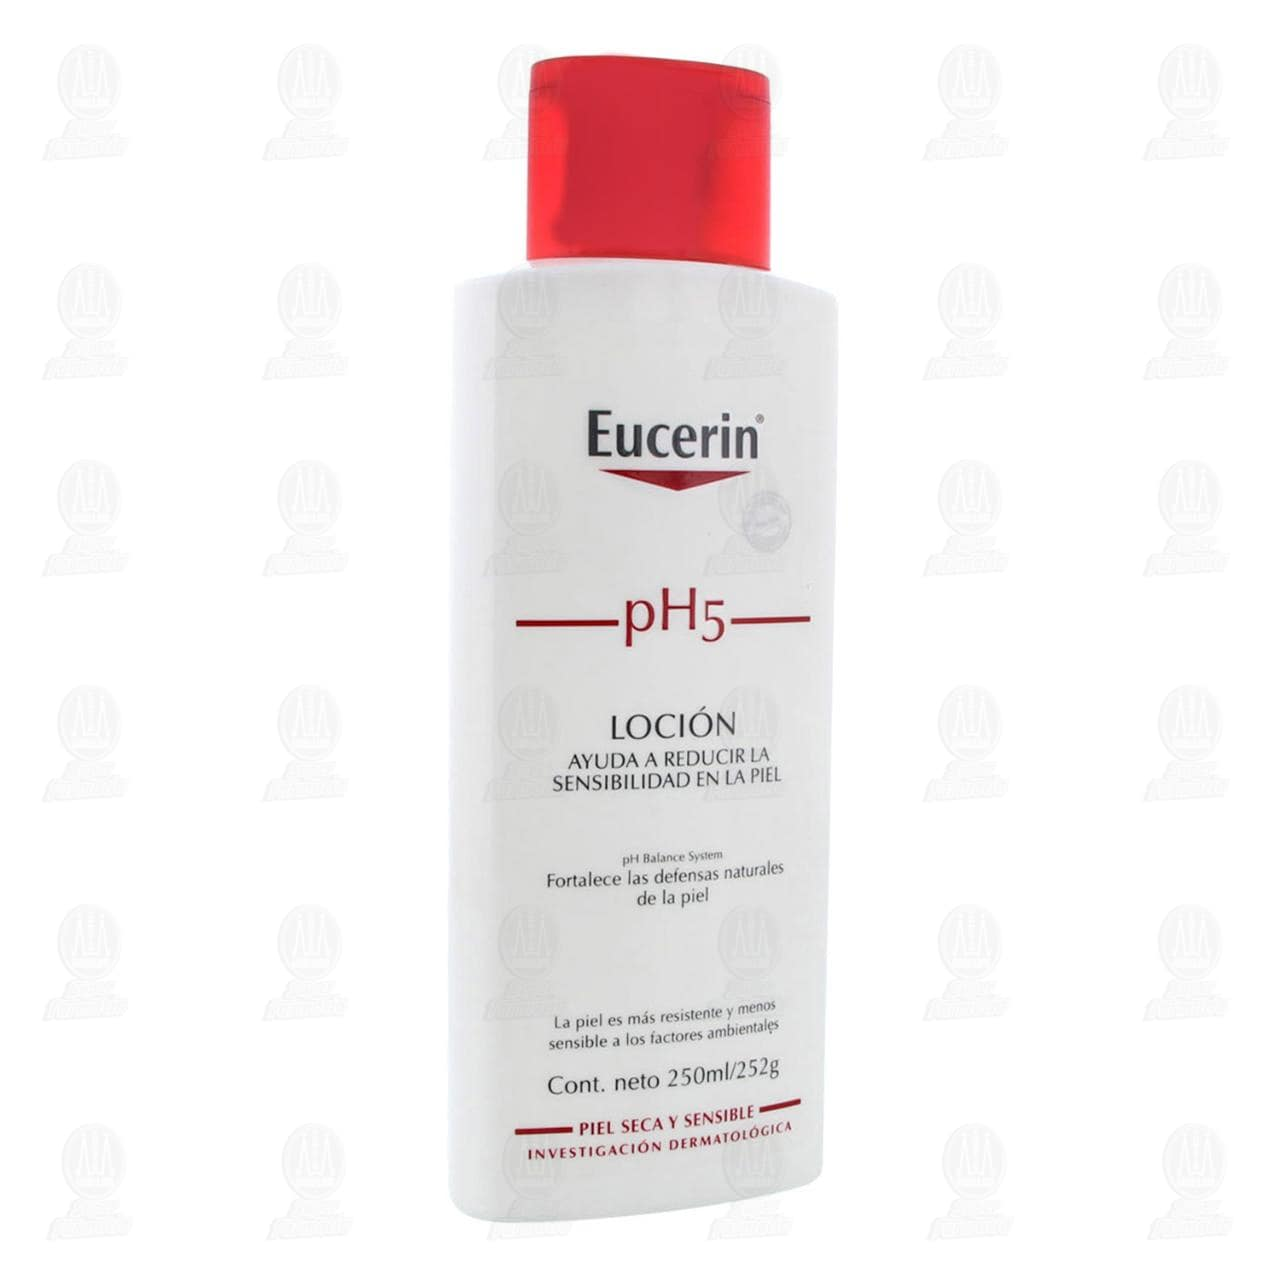 Ph5 Eucerin 250ml Crema